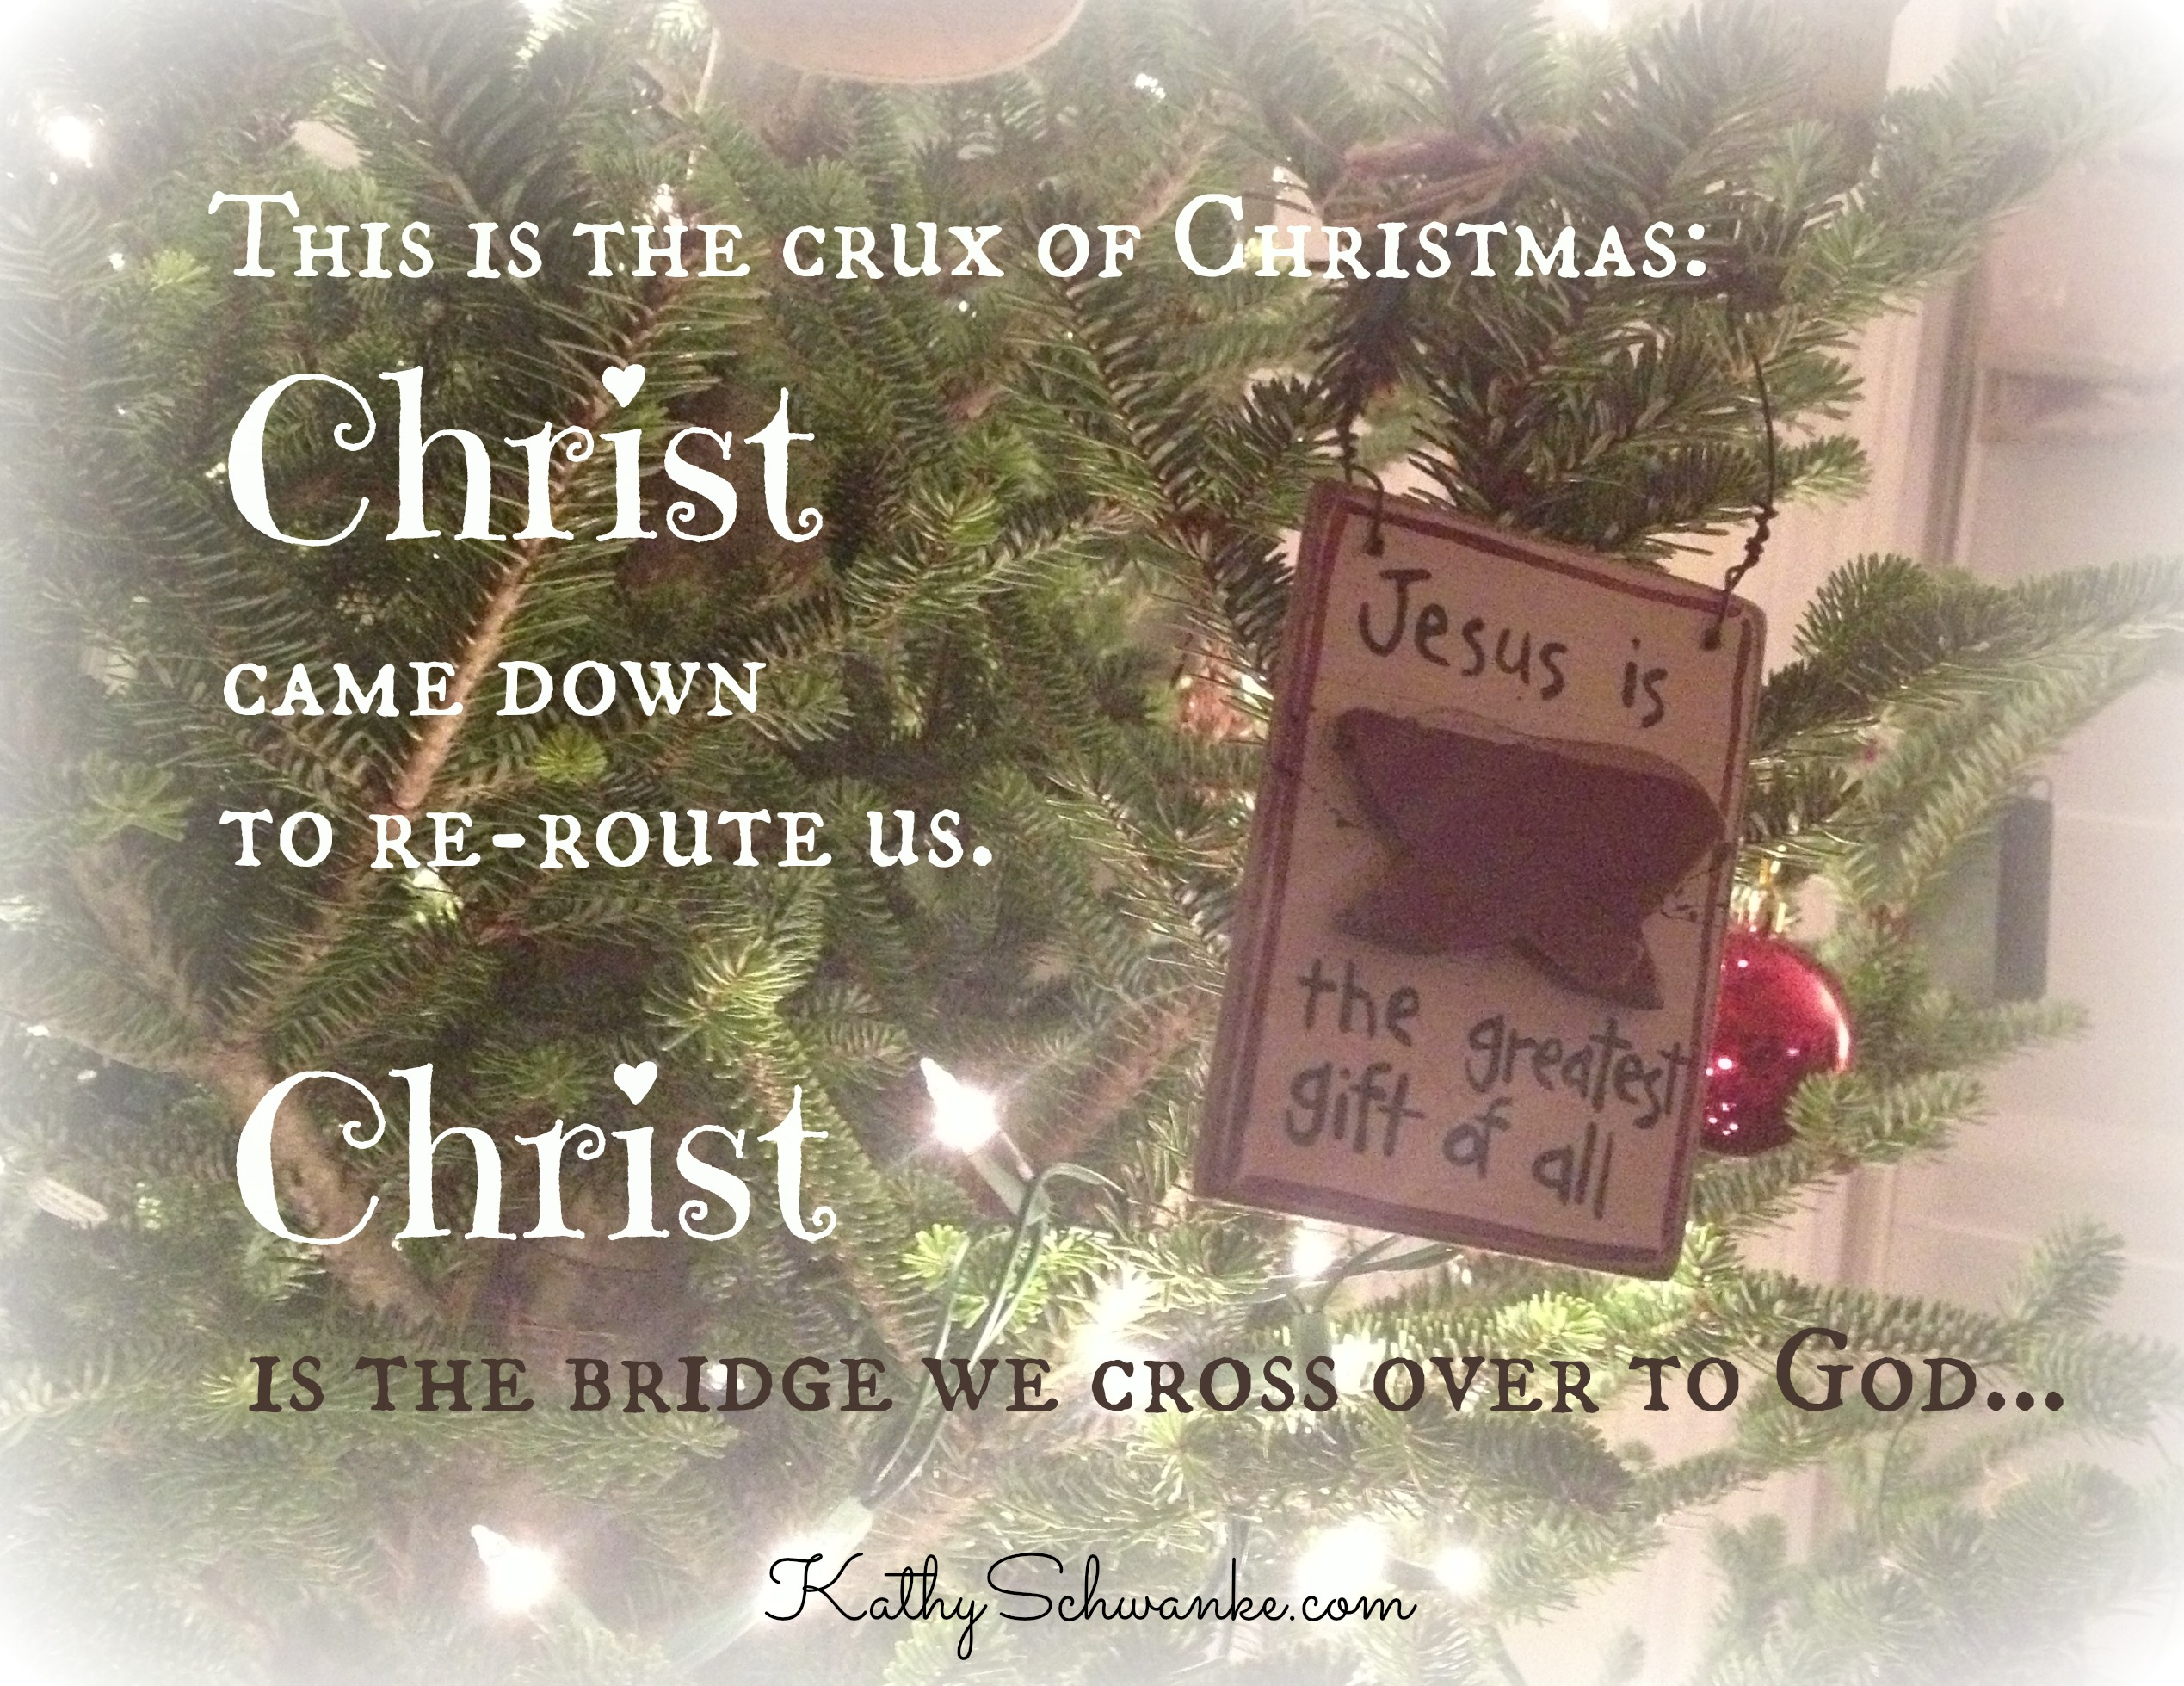 The Crux of Christmas Kathy Schwanke